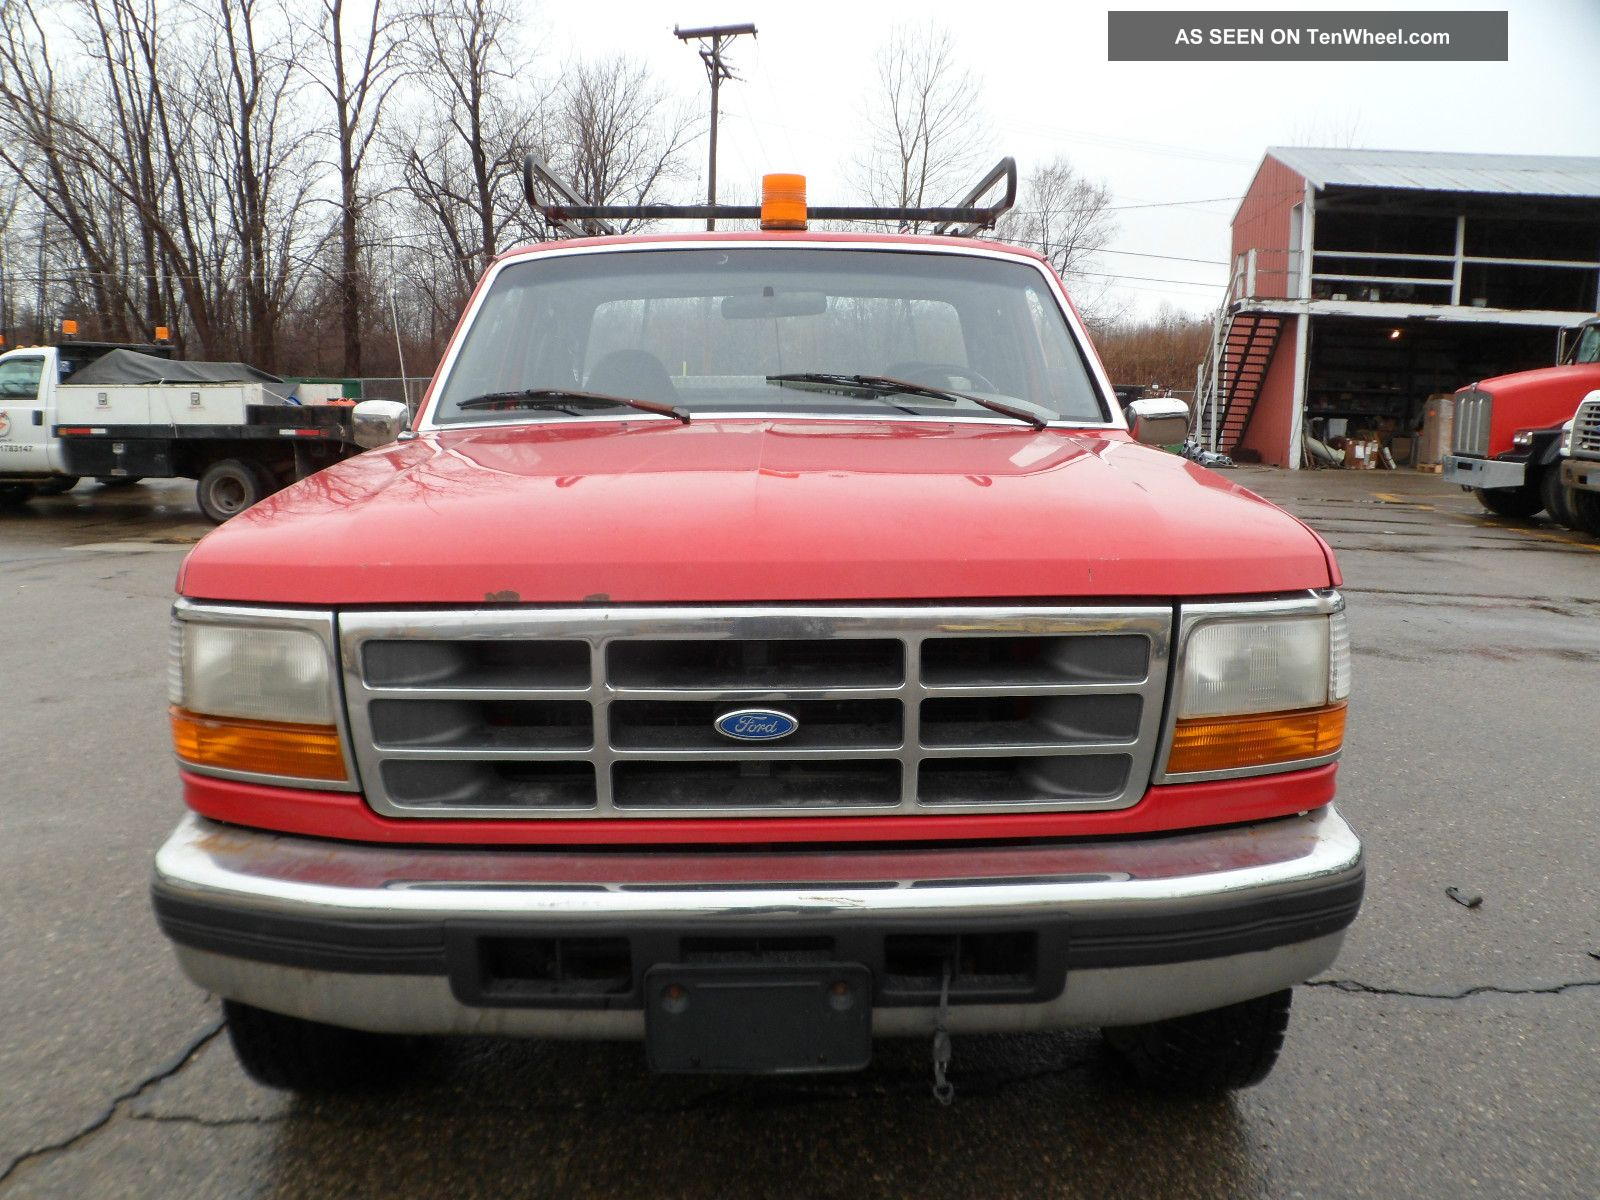 ford f 250 1996 review amazing pictures and images look at the car. Black Bedroom Furniture Sets. Home Design Ideas